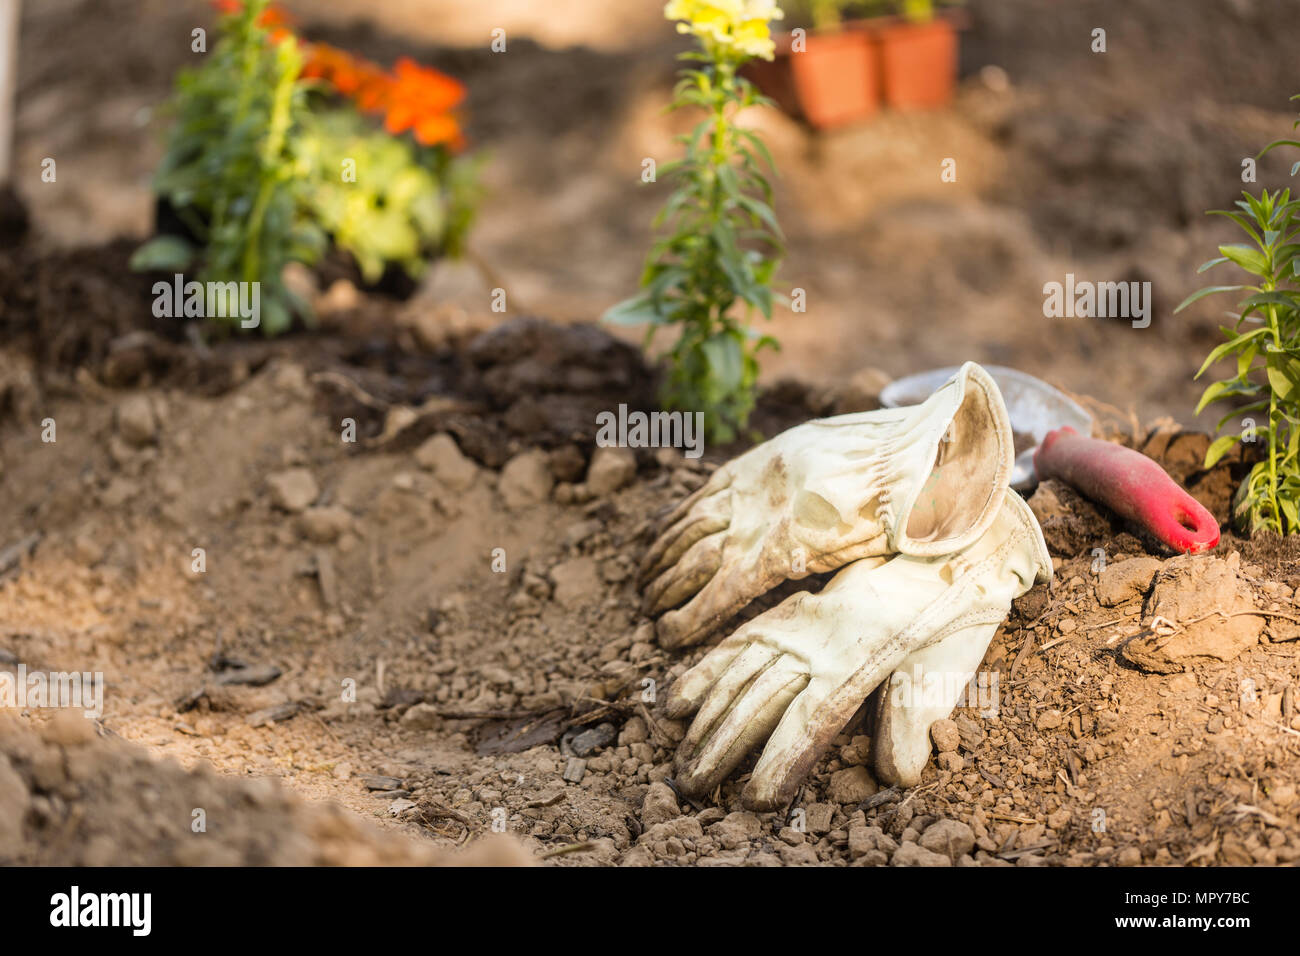 High angle view of gardening gloves with trowel on field at garden - Stock Image